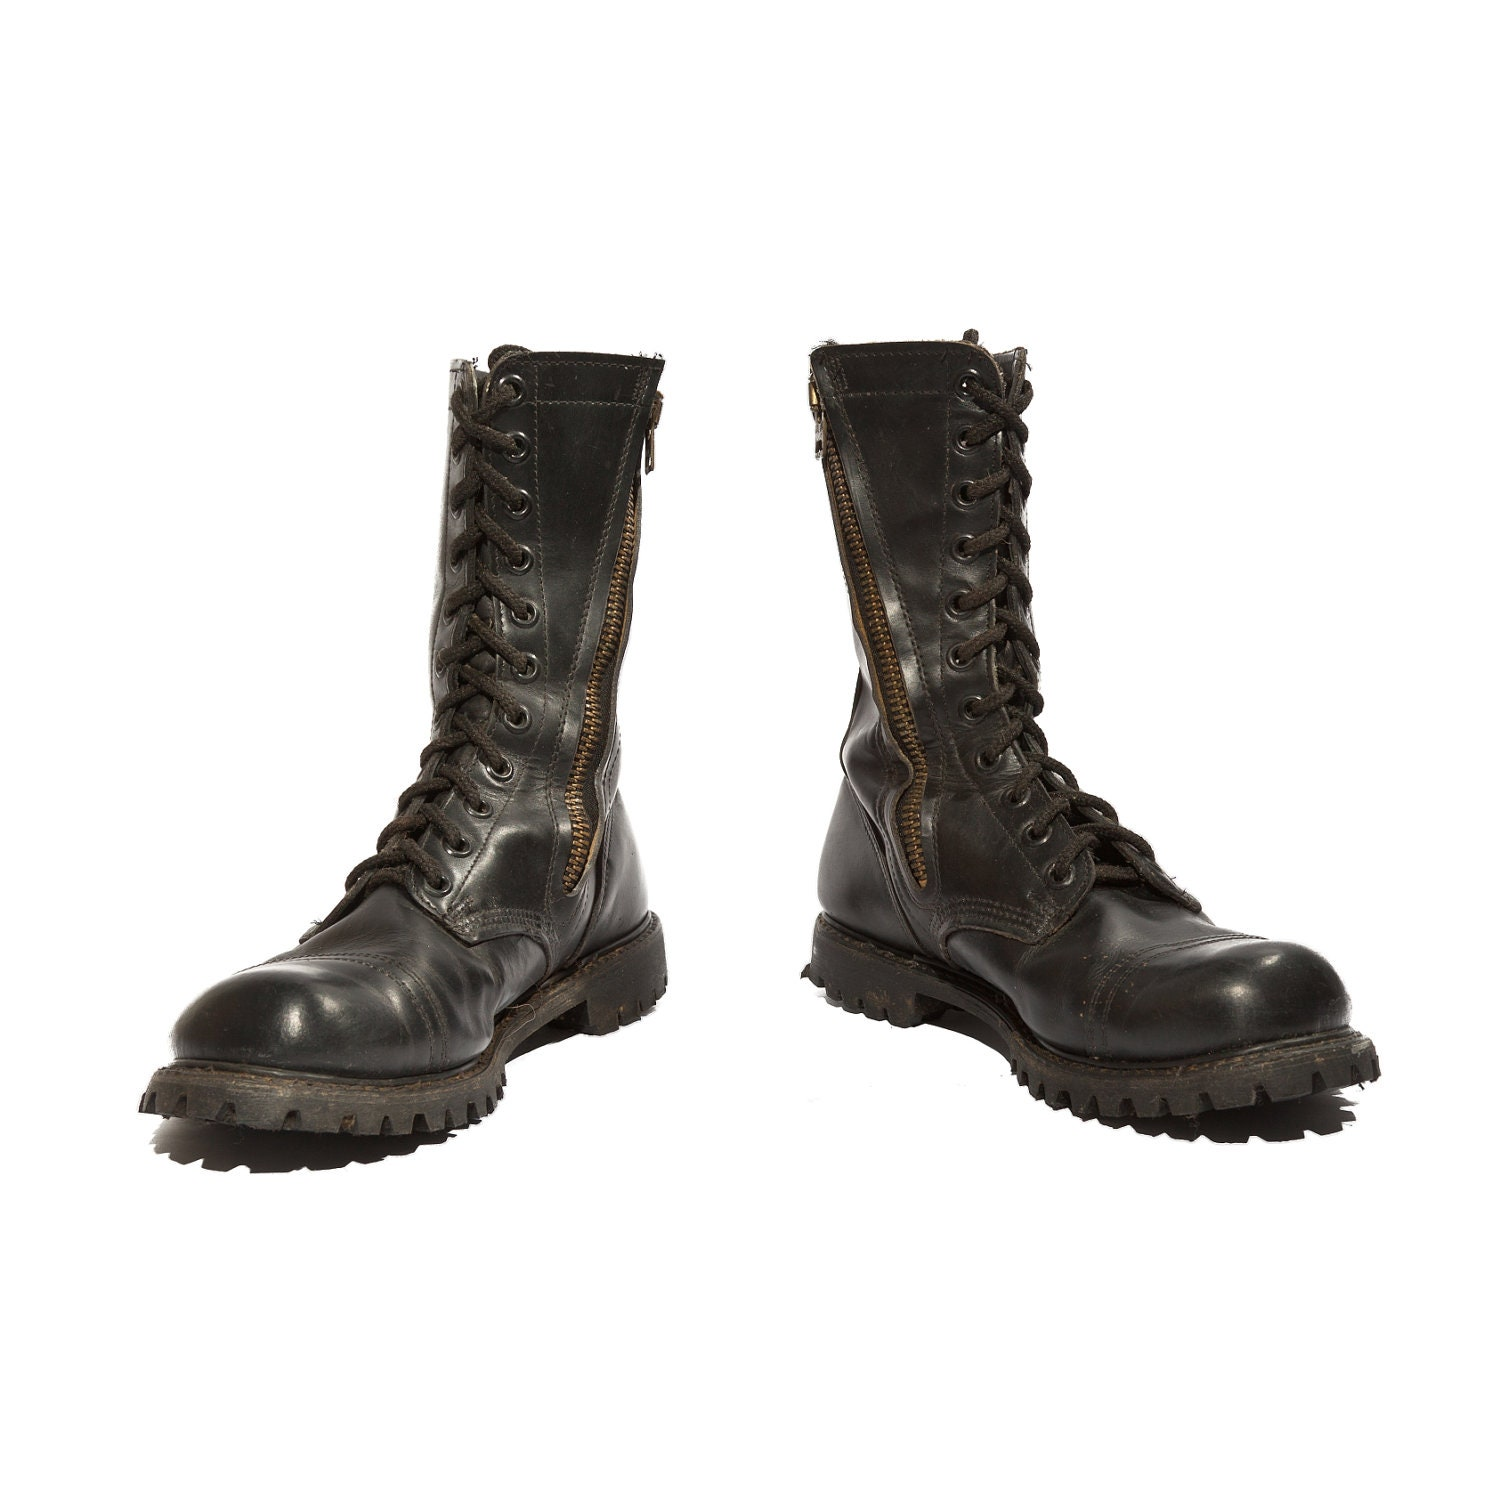 Vintage Combat Boots With Zippered Sides In Black Leather